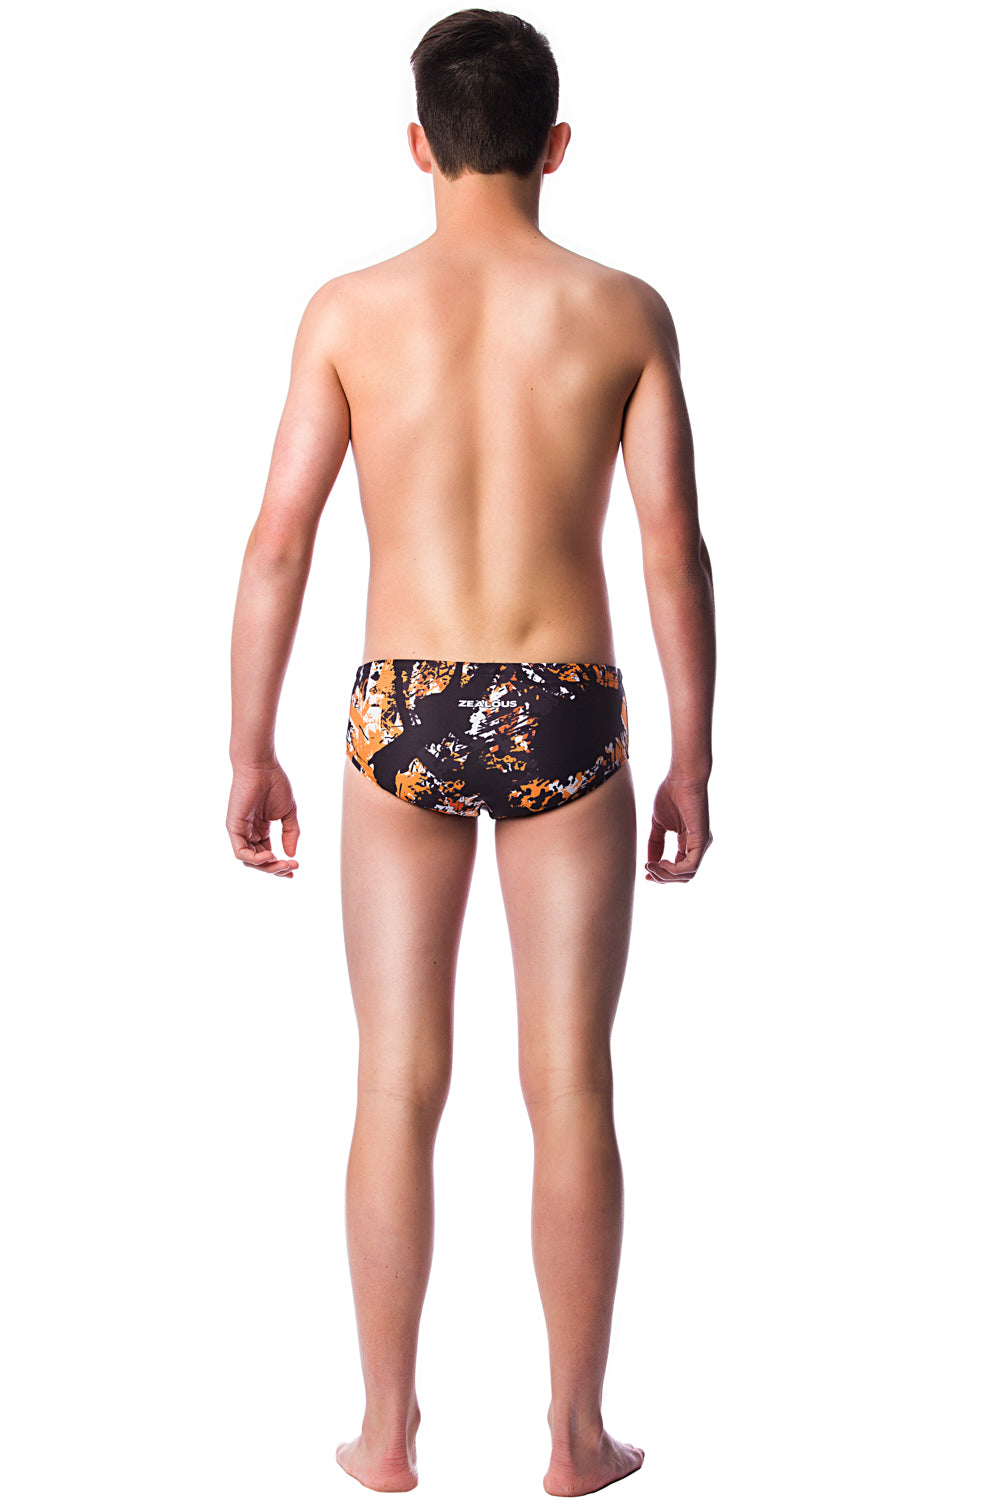 Blood Moon Boys Briefs - Shop Zealous Training Swimwear